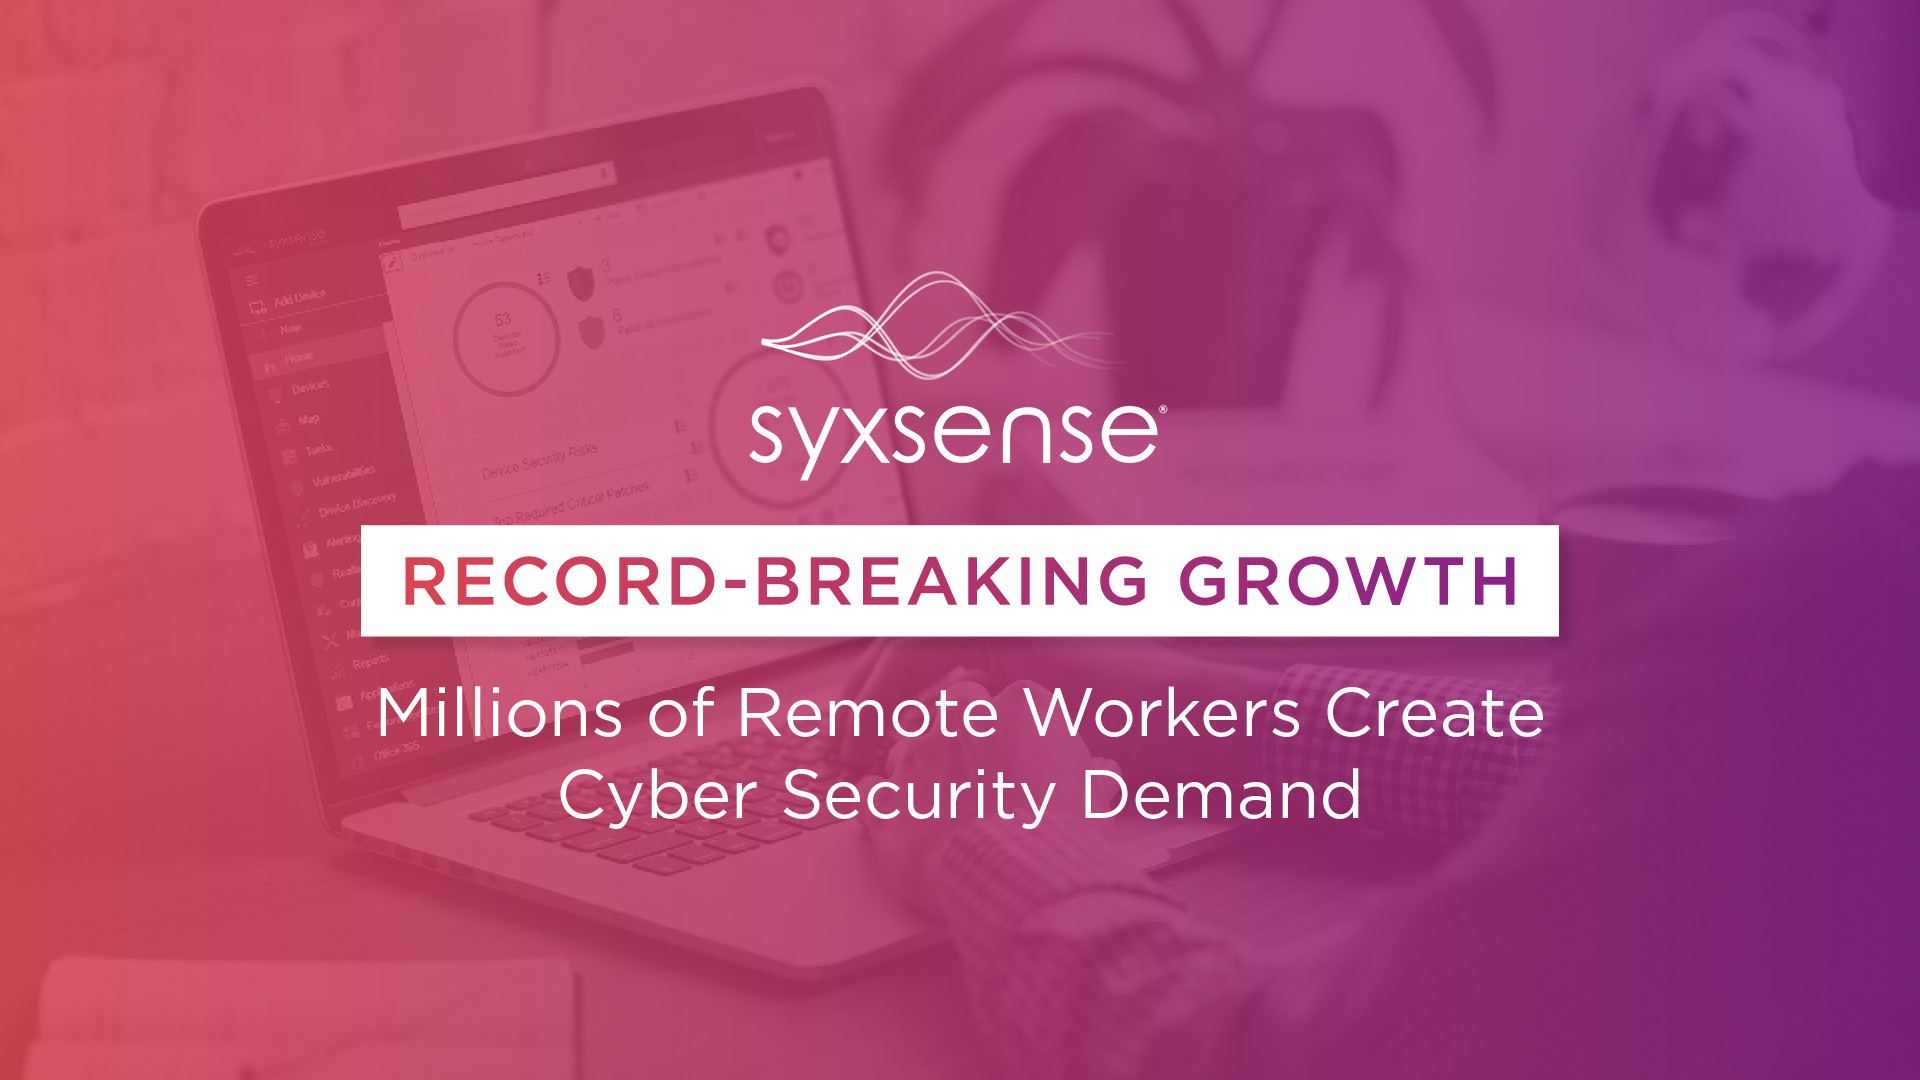 Syxsense Experiences Record Breaking Growth